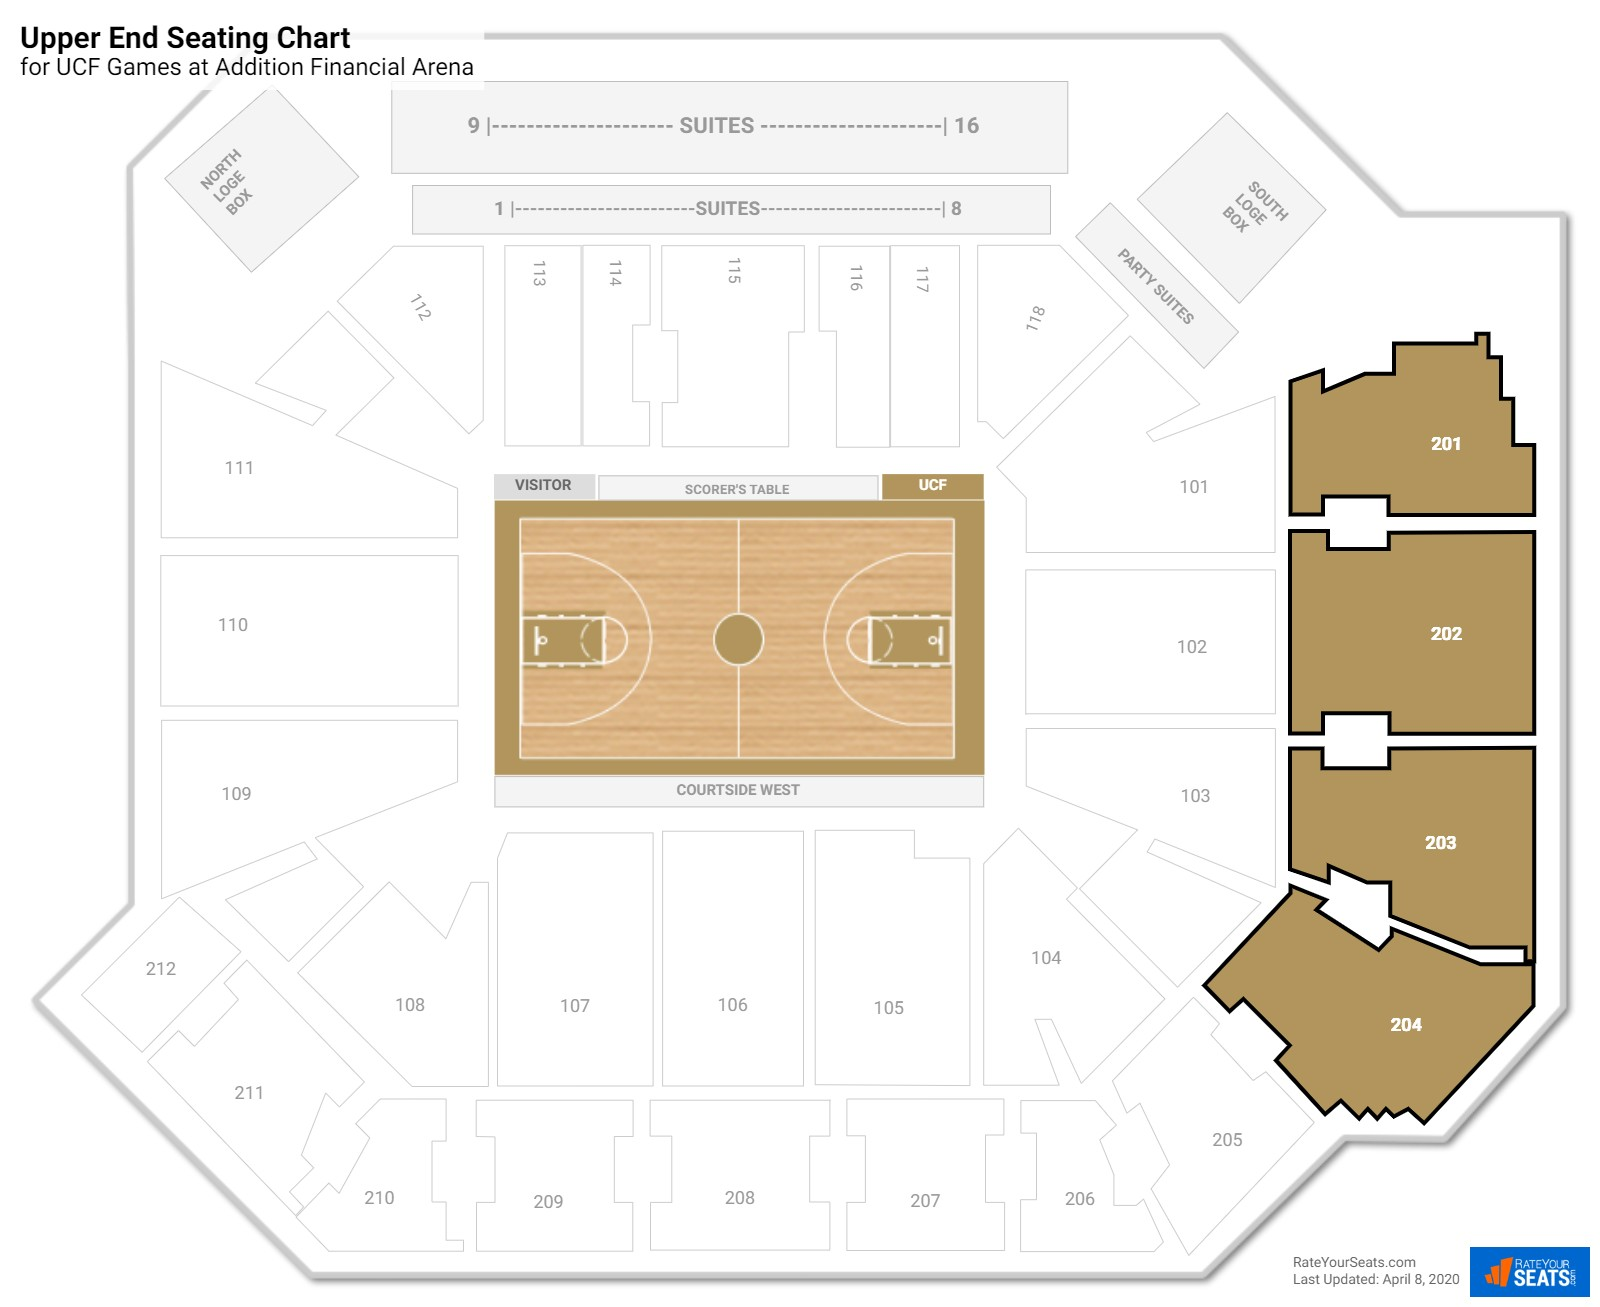 CFE Arena Upper End seating chart